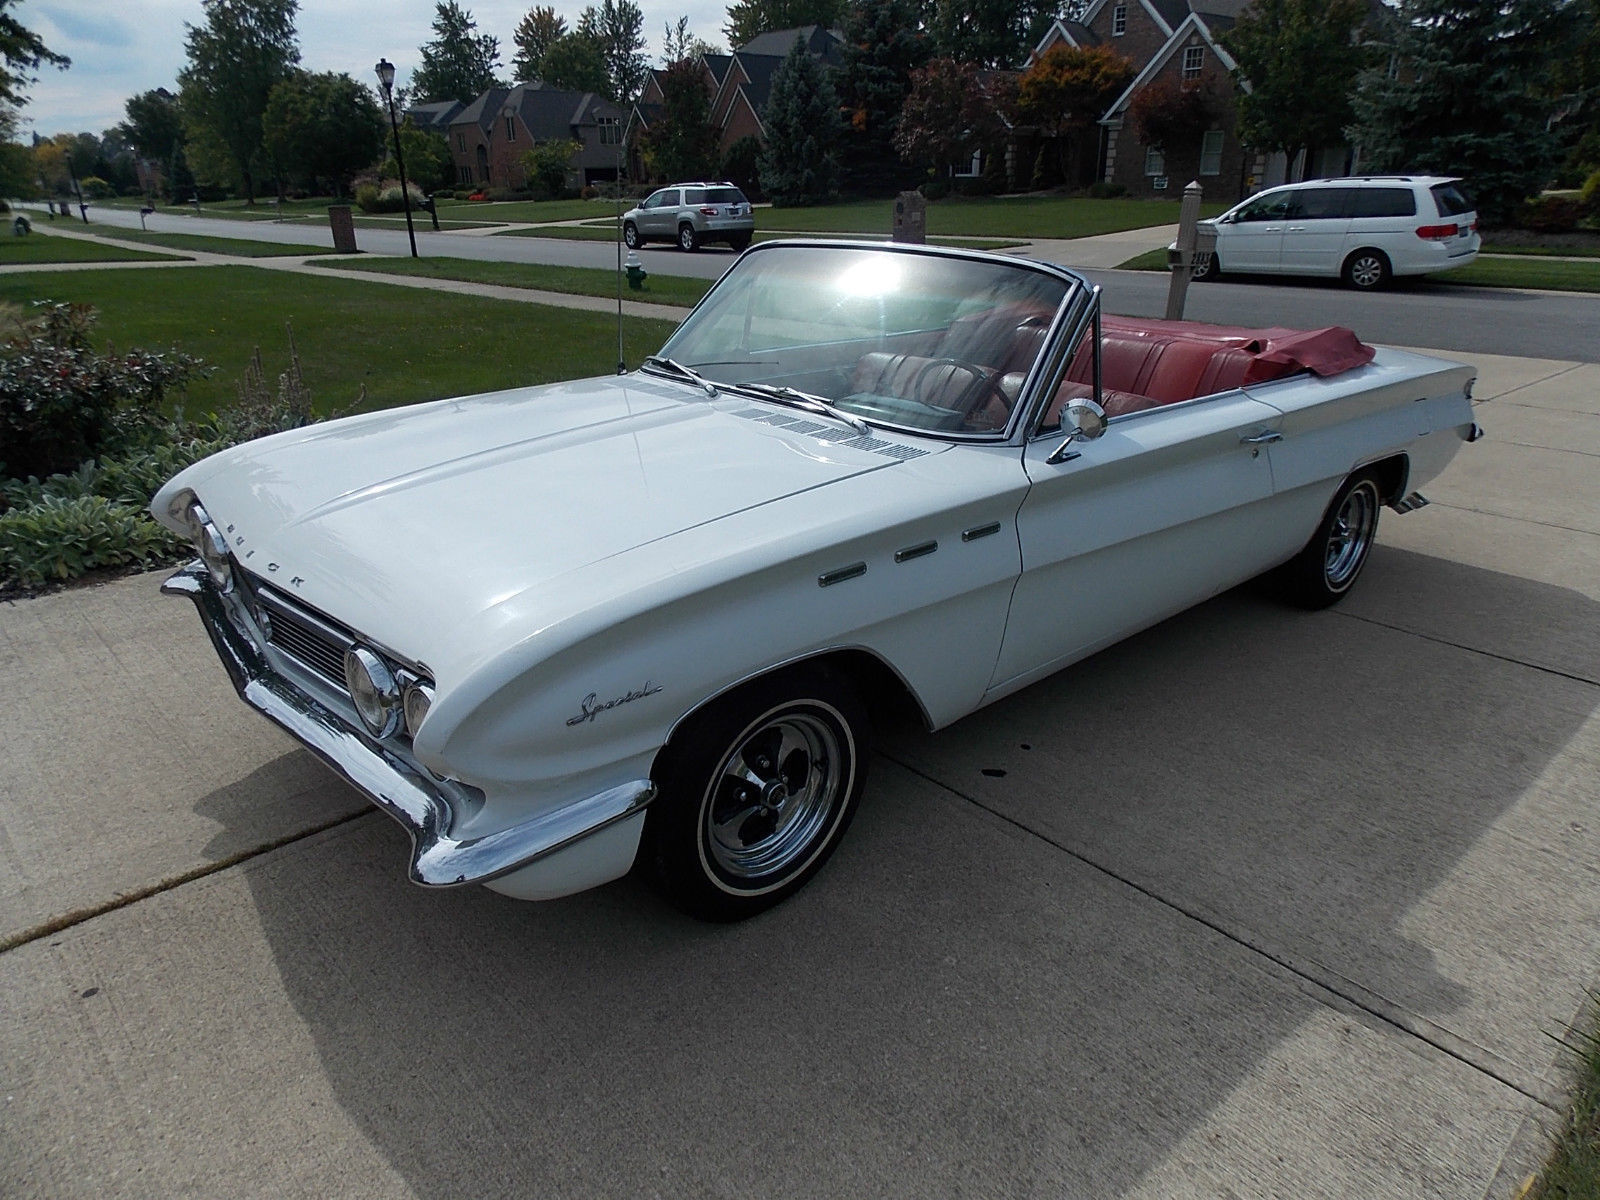 1962 Buick Skylark Special Convertible, nice old classic, 215ci V8 ...